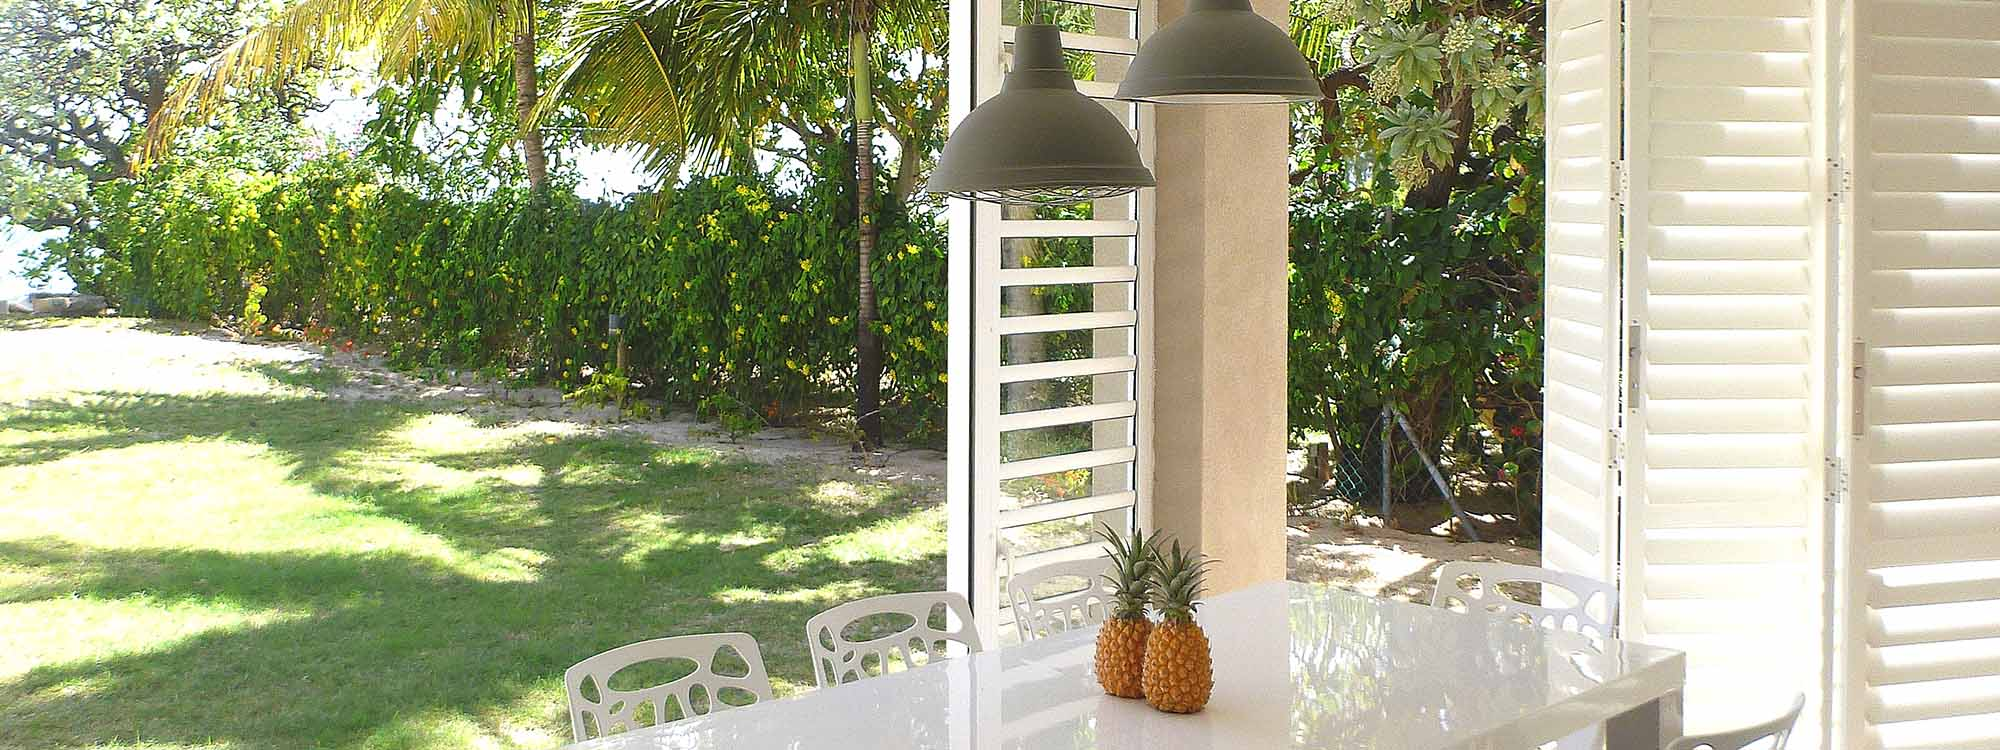 Security-shutters-patio-dining